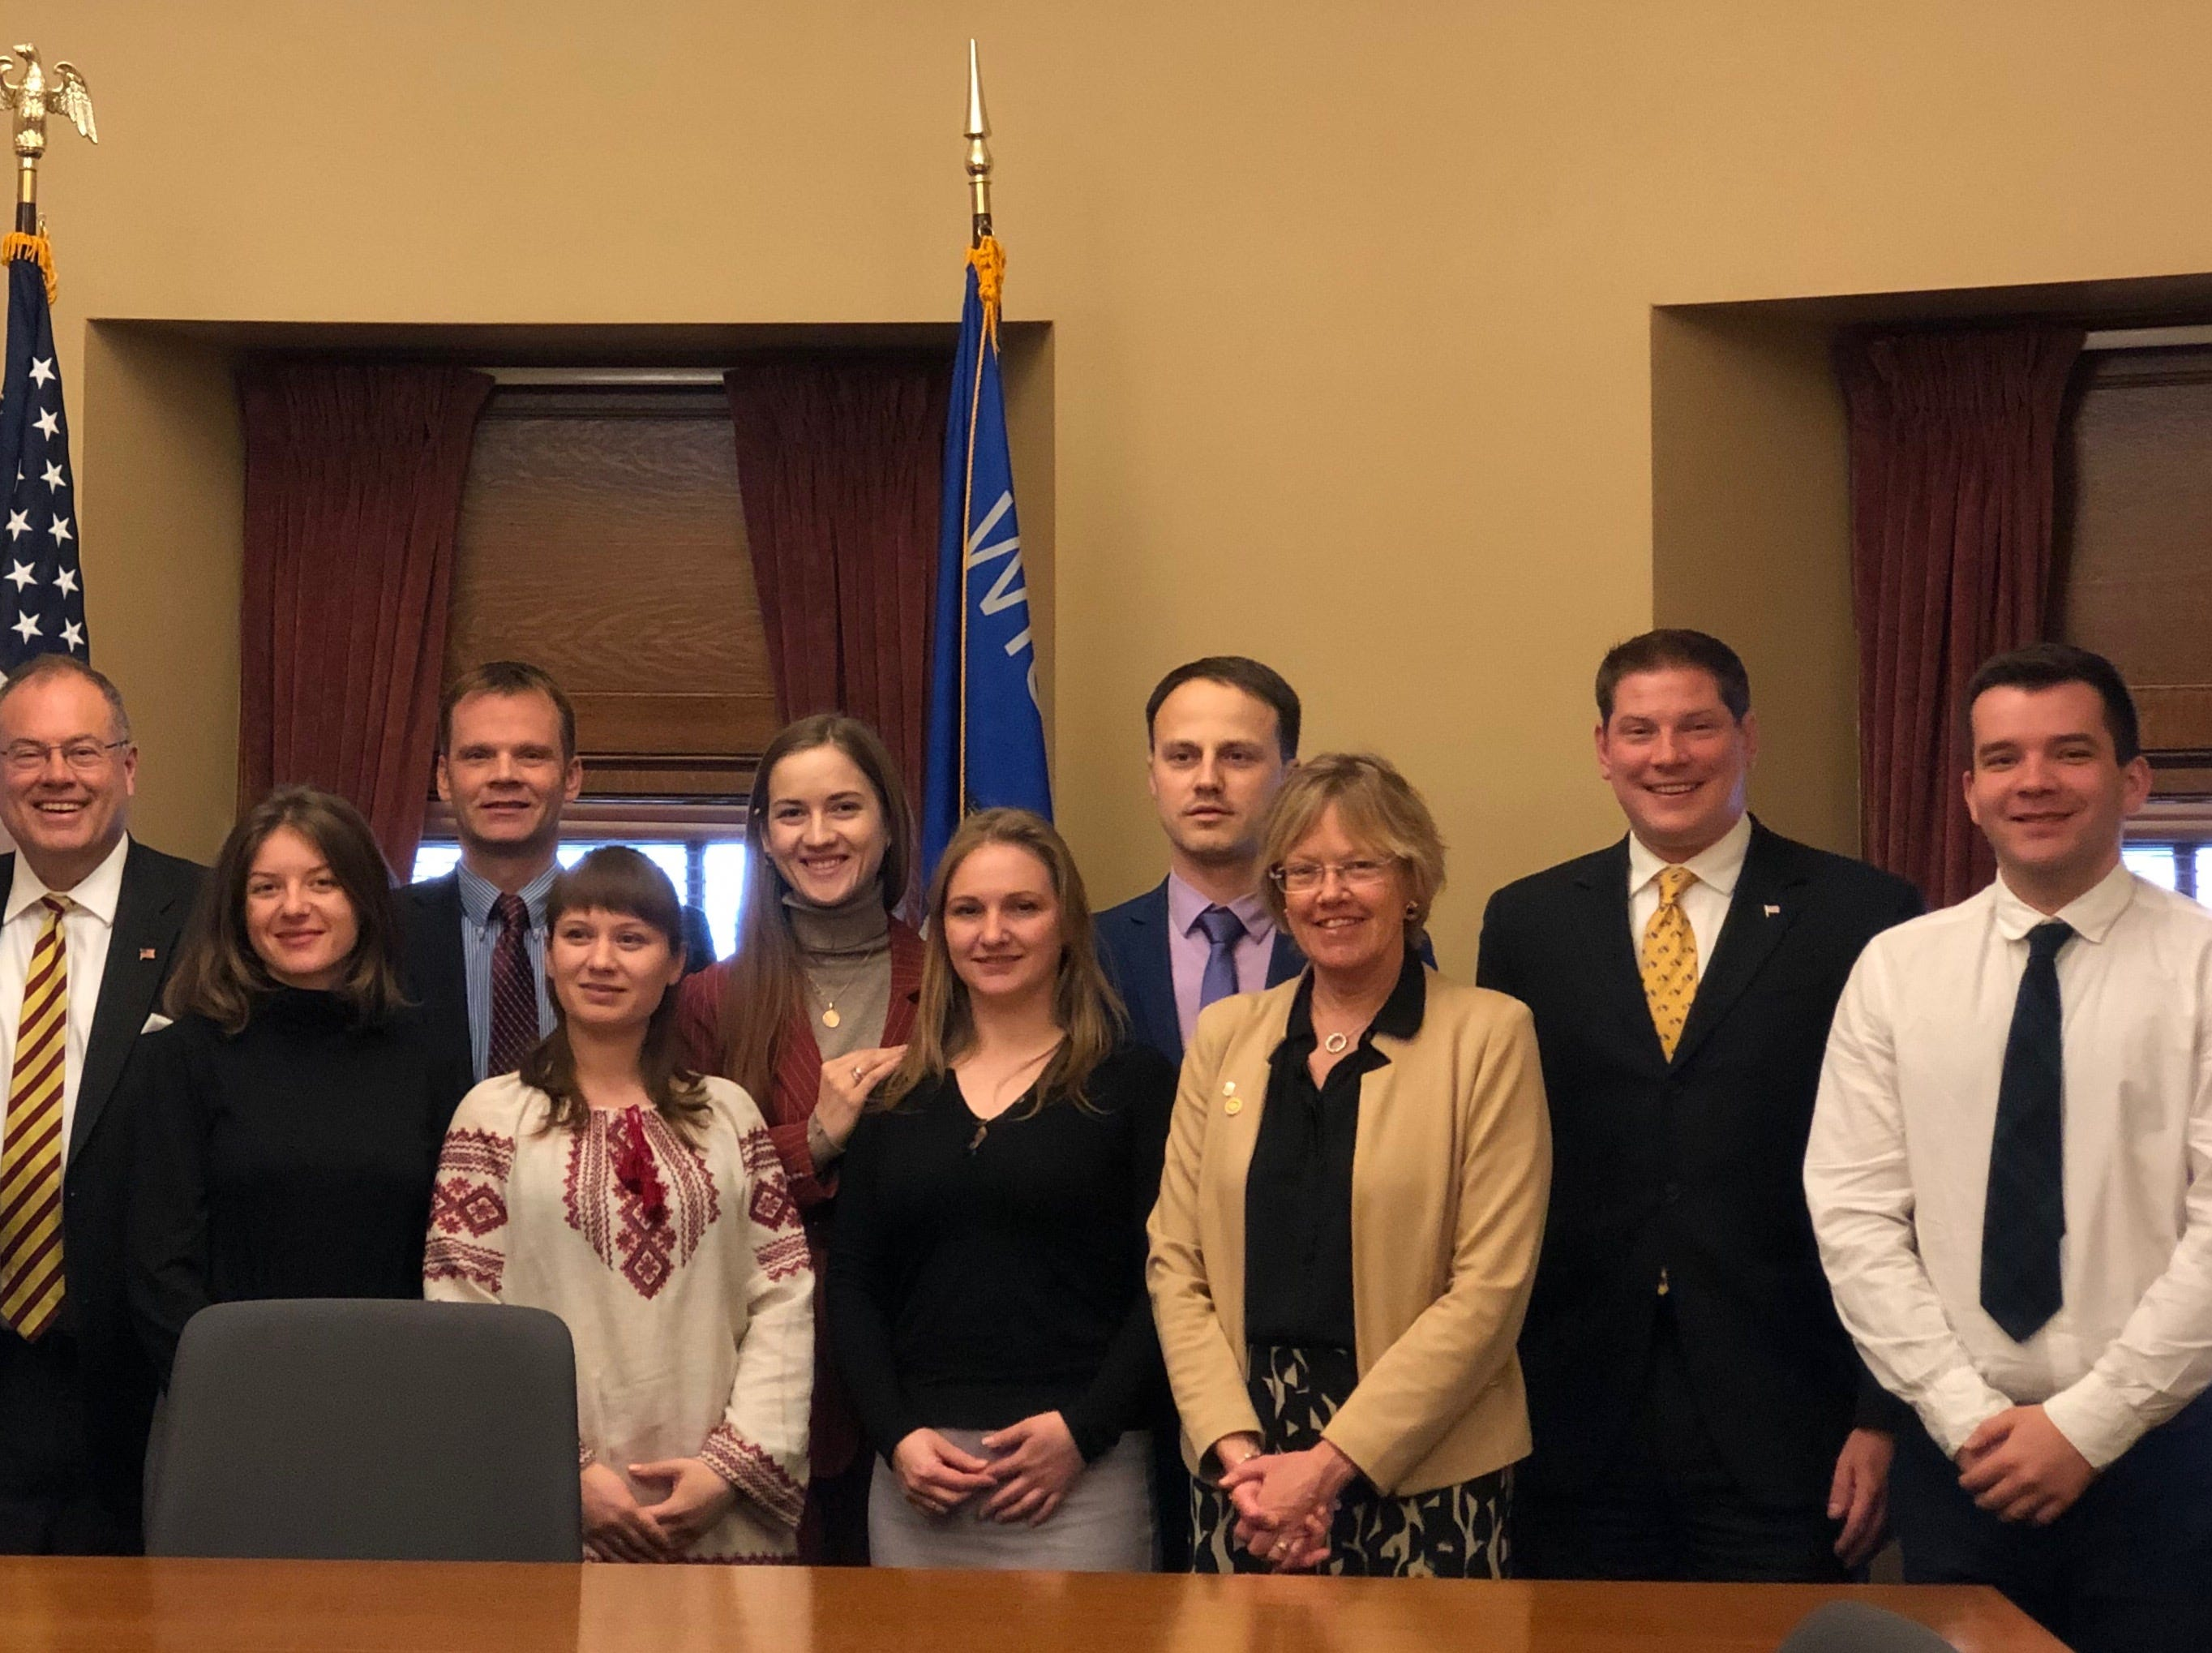 State representative Terry Katsma, state representative Tyler Vorpagel and state senator Devin LeMahieu with the delegates.